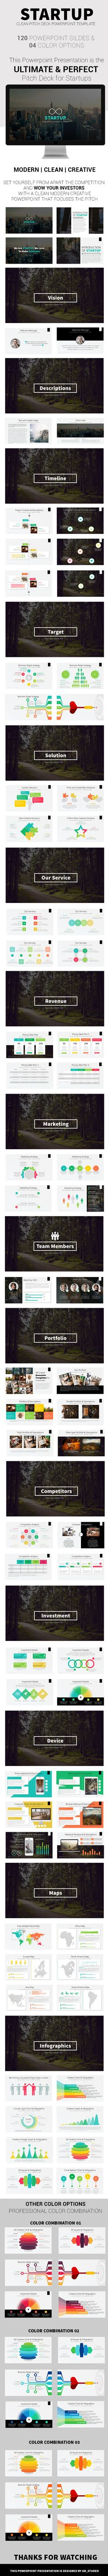 Startup - Clean Pitch Deck Powerpoint Template (agency, business, business plan, charts, clean, company, competition, corporate, elevator, finance, graphs, info graphics, investment, marketing, pitch deck, powerpoint, pptx, presentation, professional, proposal, slides, start-up, startup, team, template, timeline, vision)